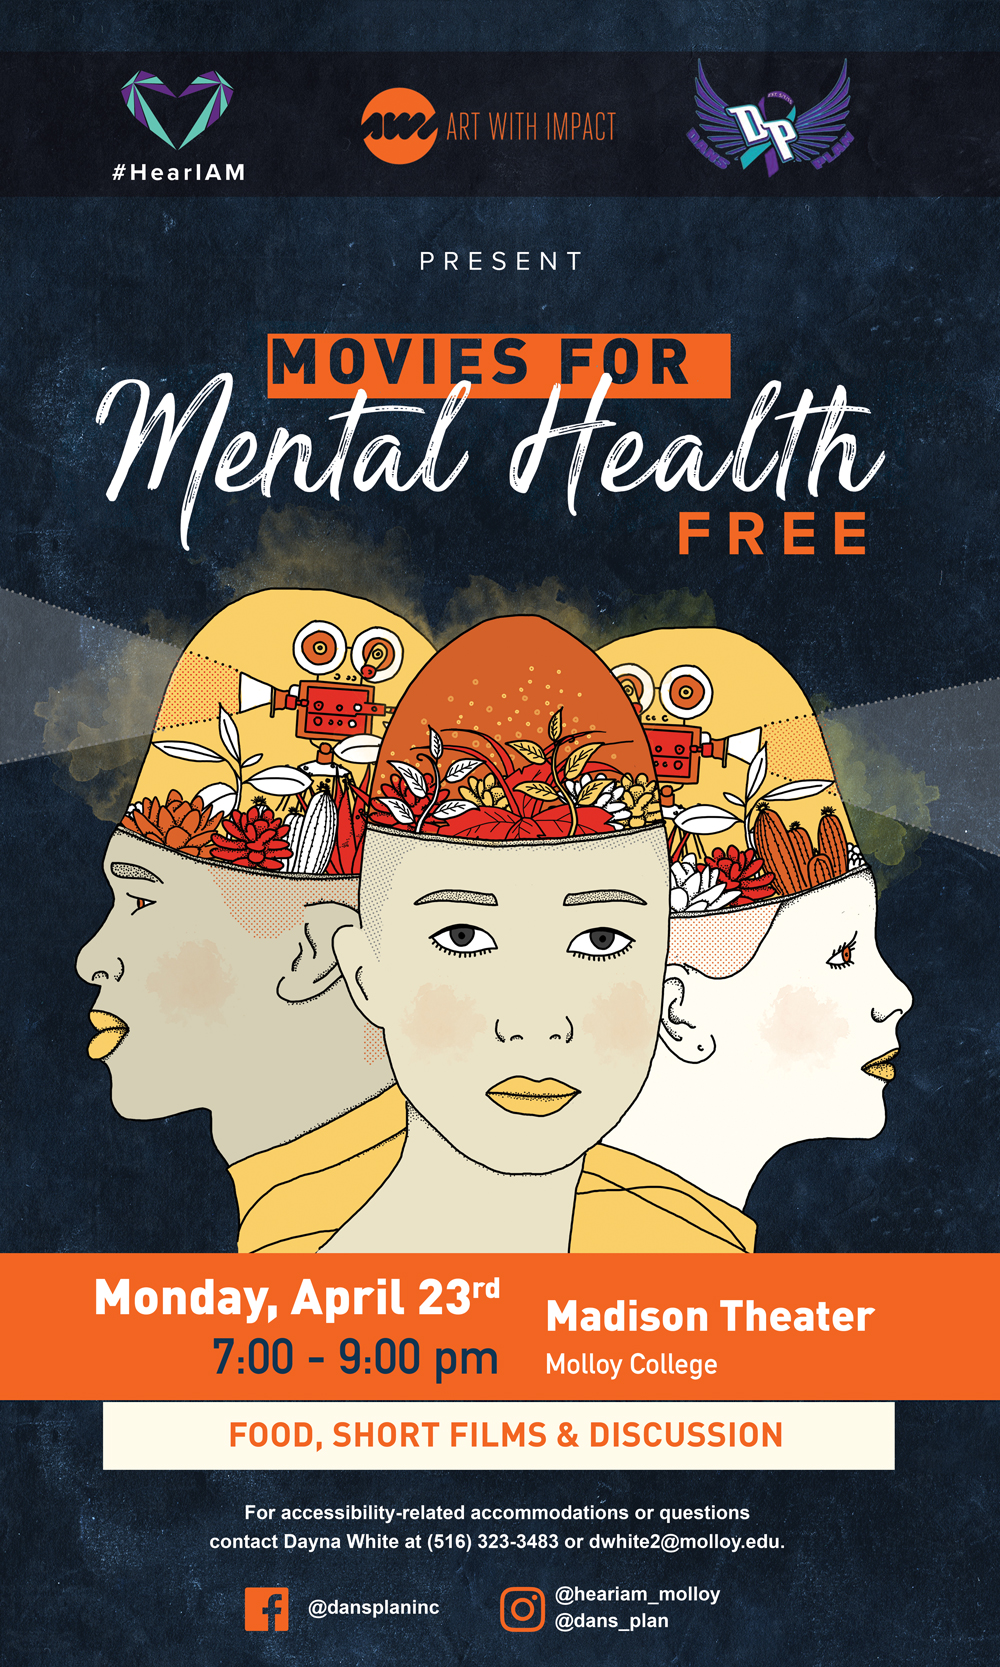 FREE! Movies for Mental Health